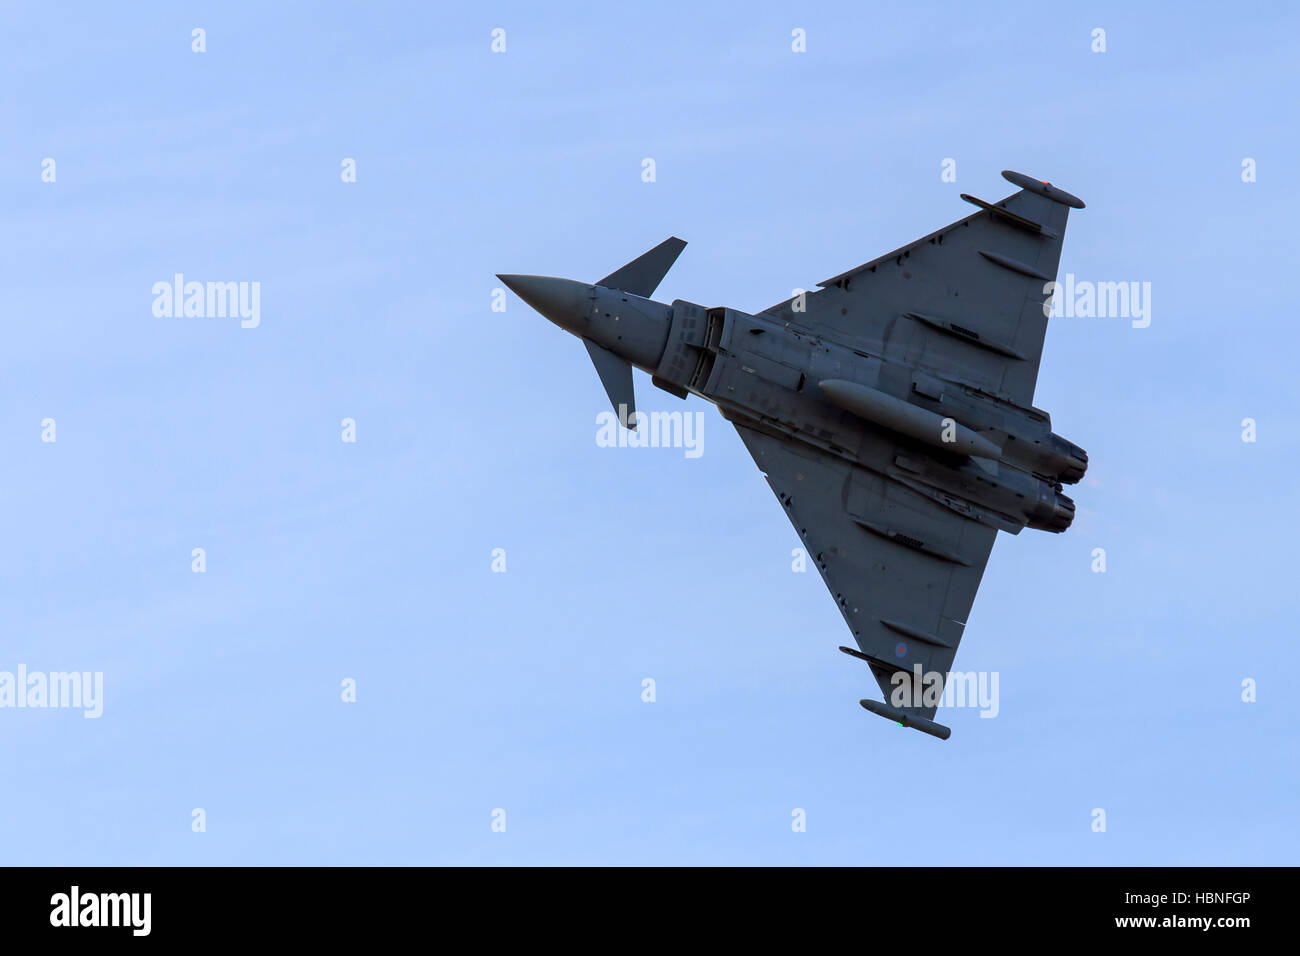 Eurofighter Typhoon Multirole fighter performing extreme manoeuvres at Southport airshow - Stock Image